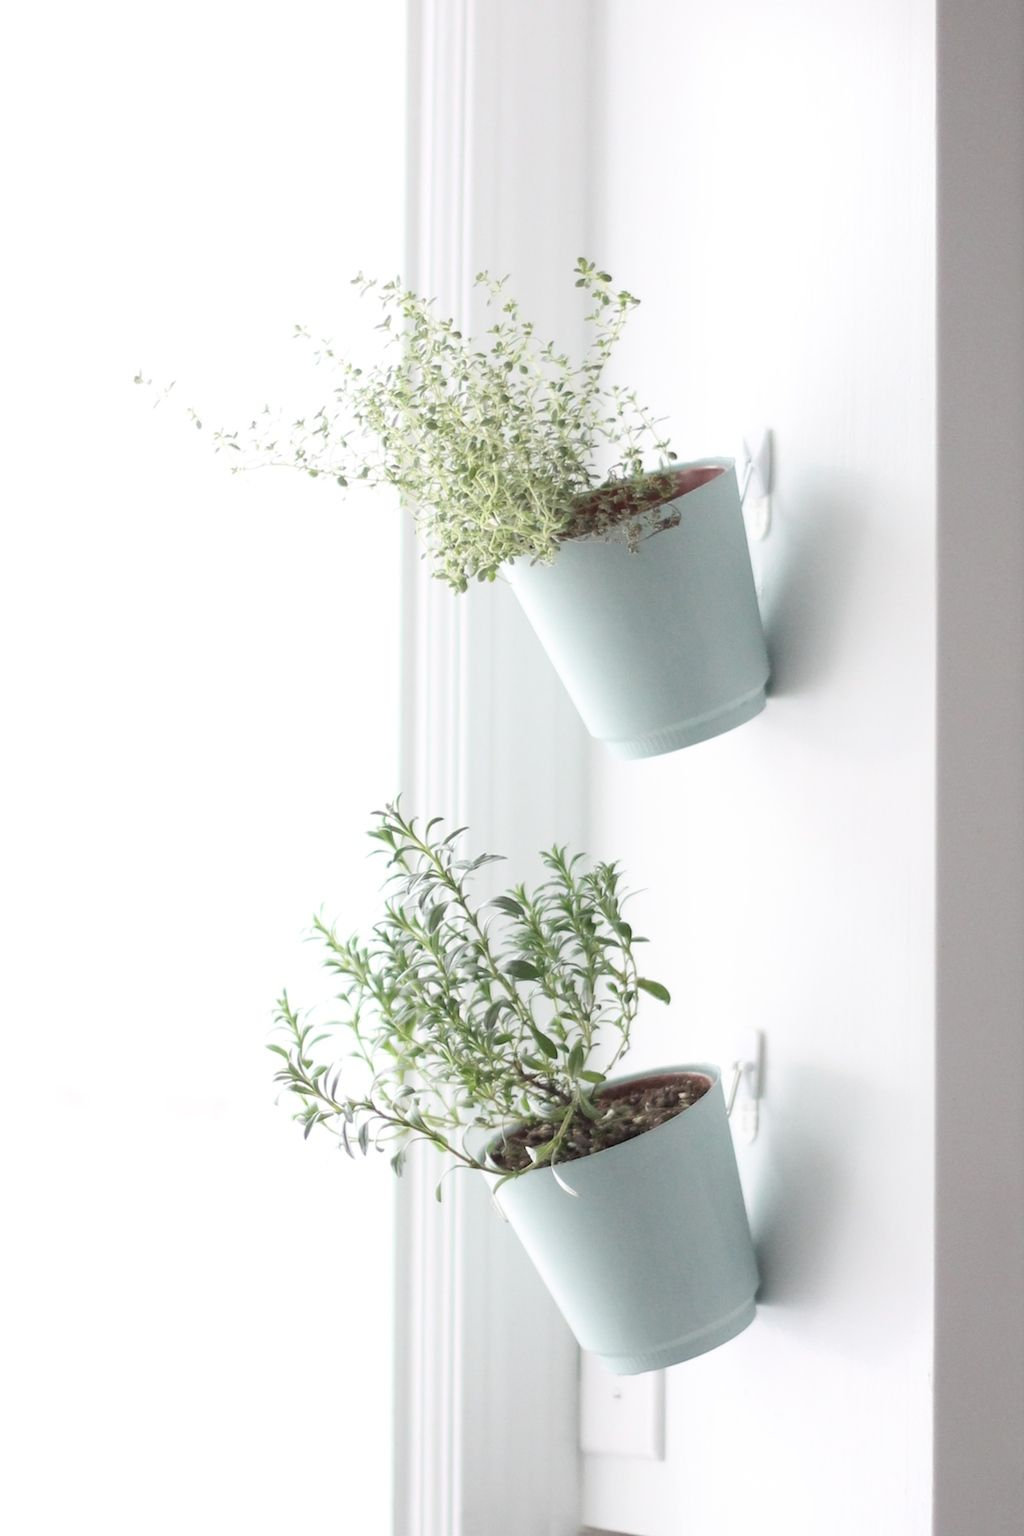 DIY Hanging Herb Garden. Future Home Hanging Mugs On Kitchen Window Sill?  With Spoon